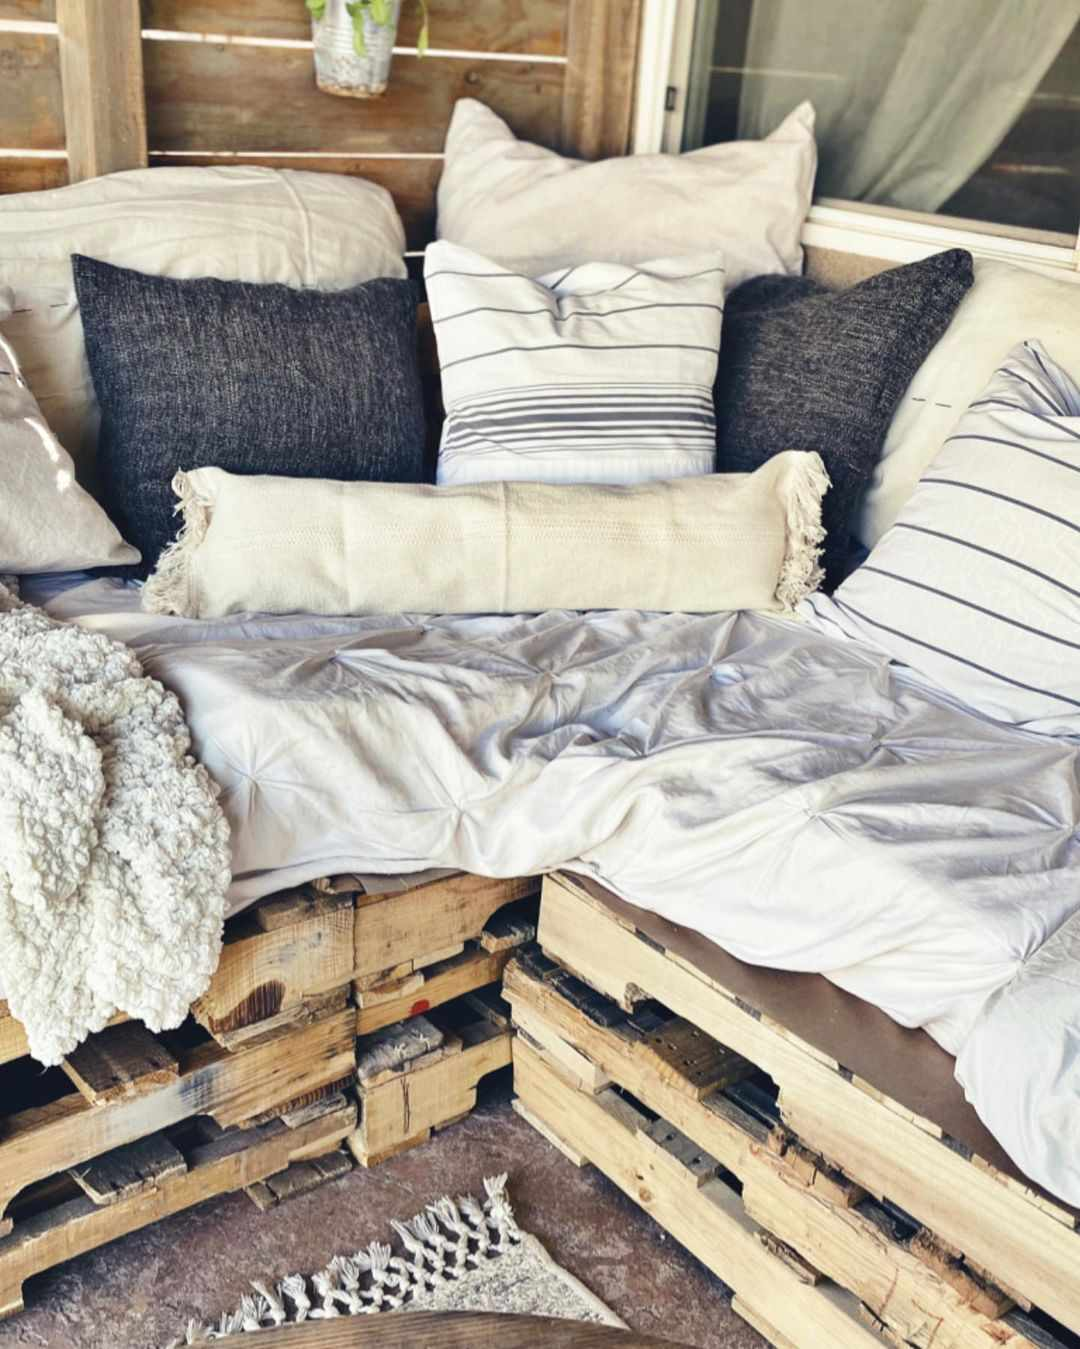 Couch made from outdoor pallets